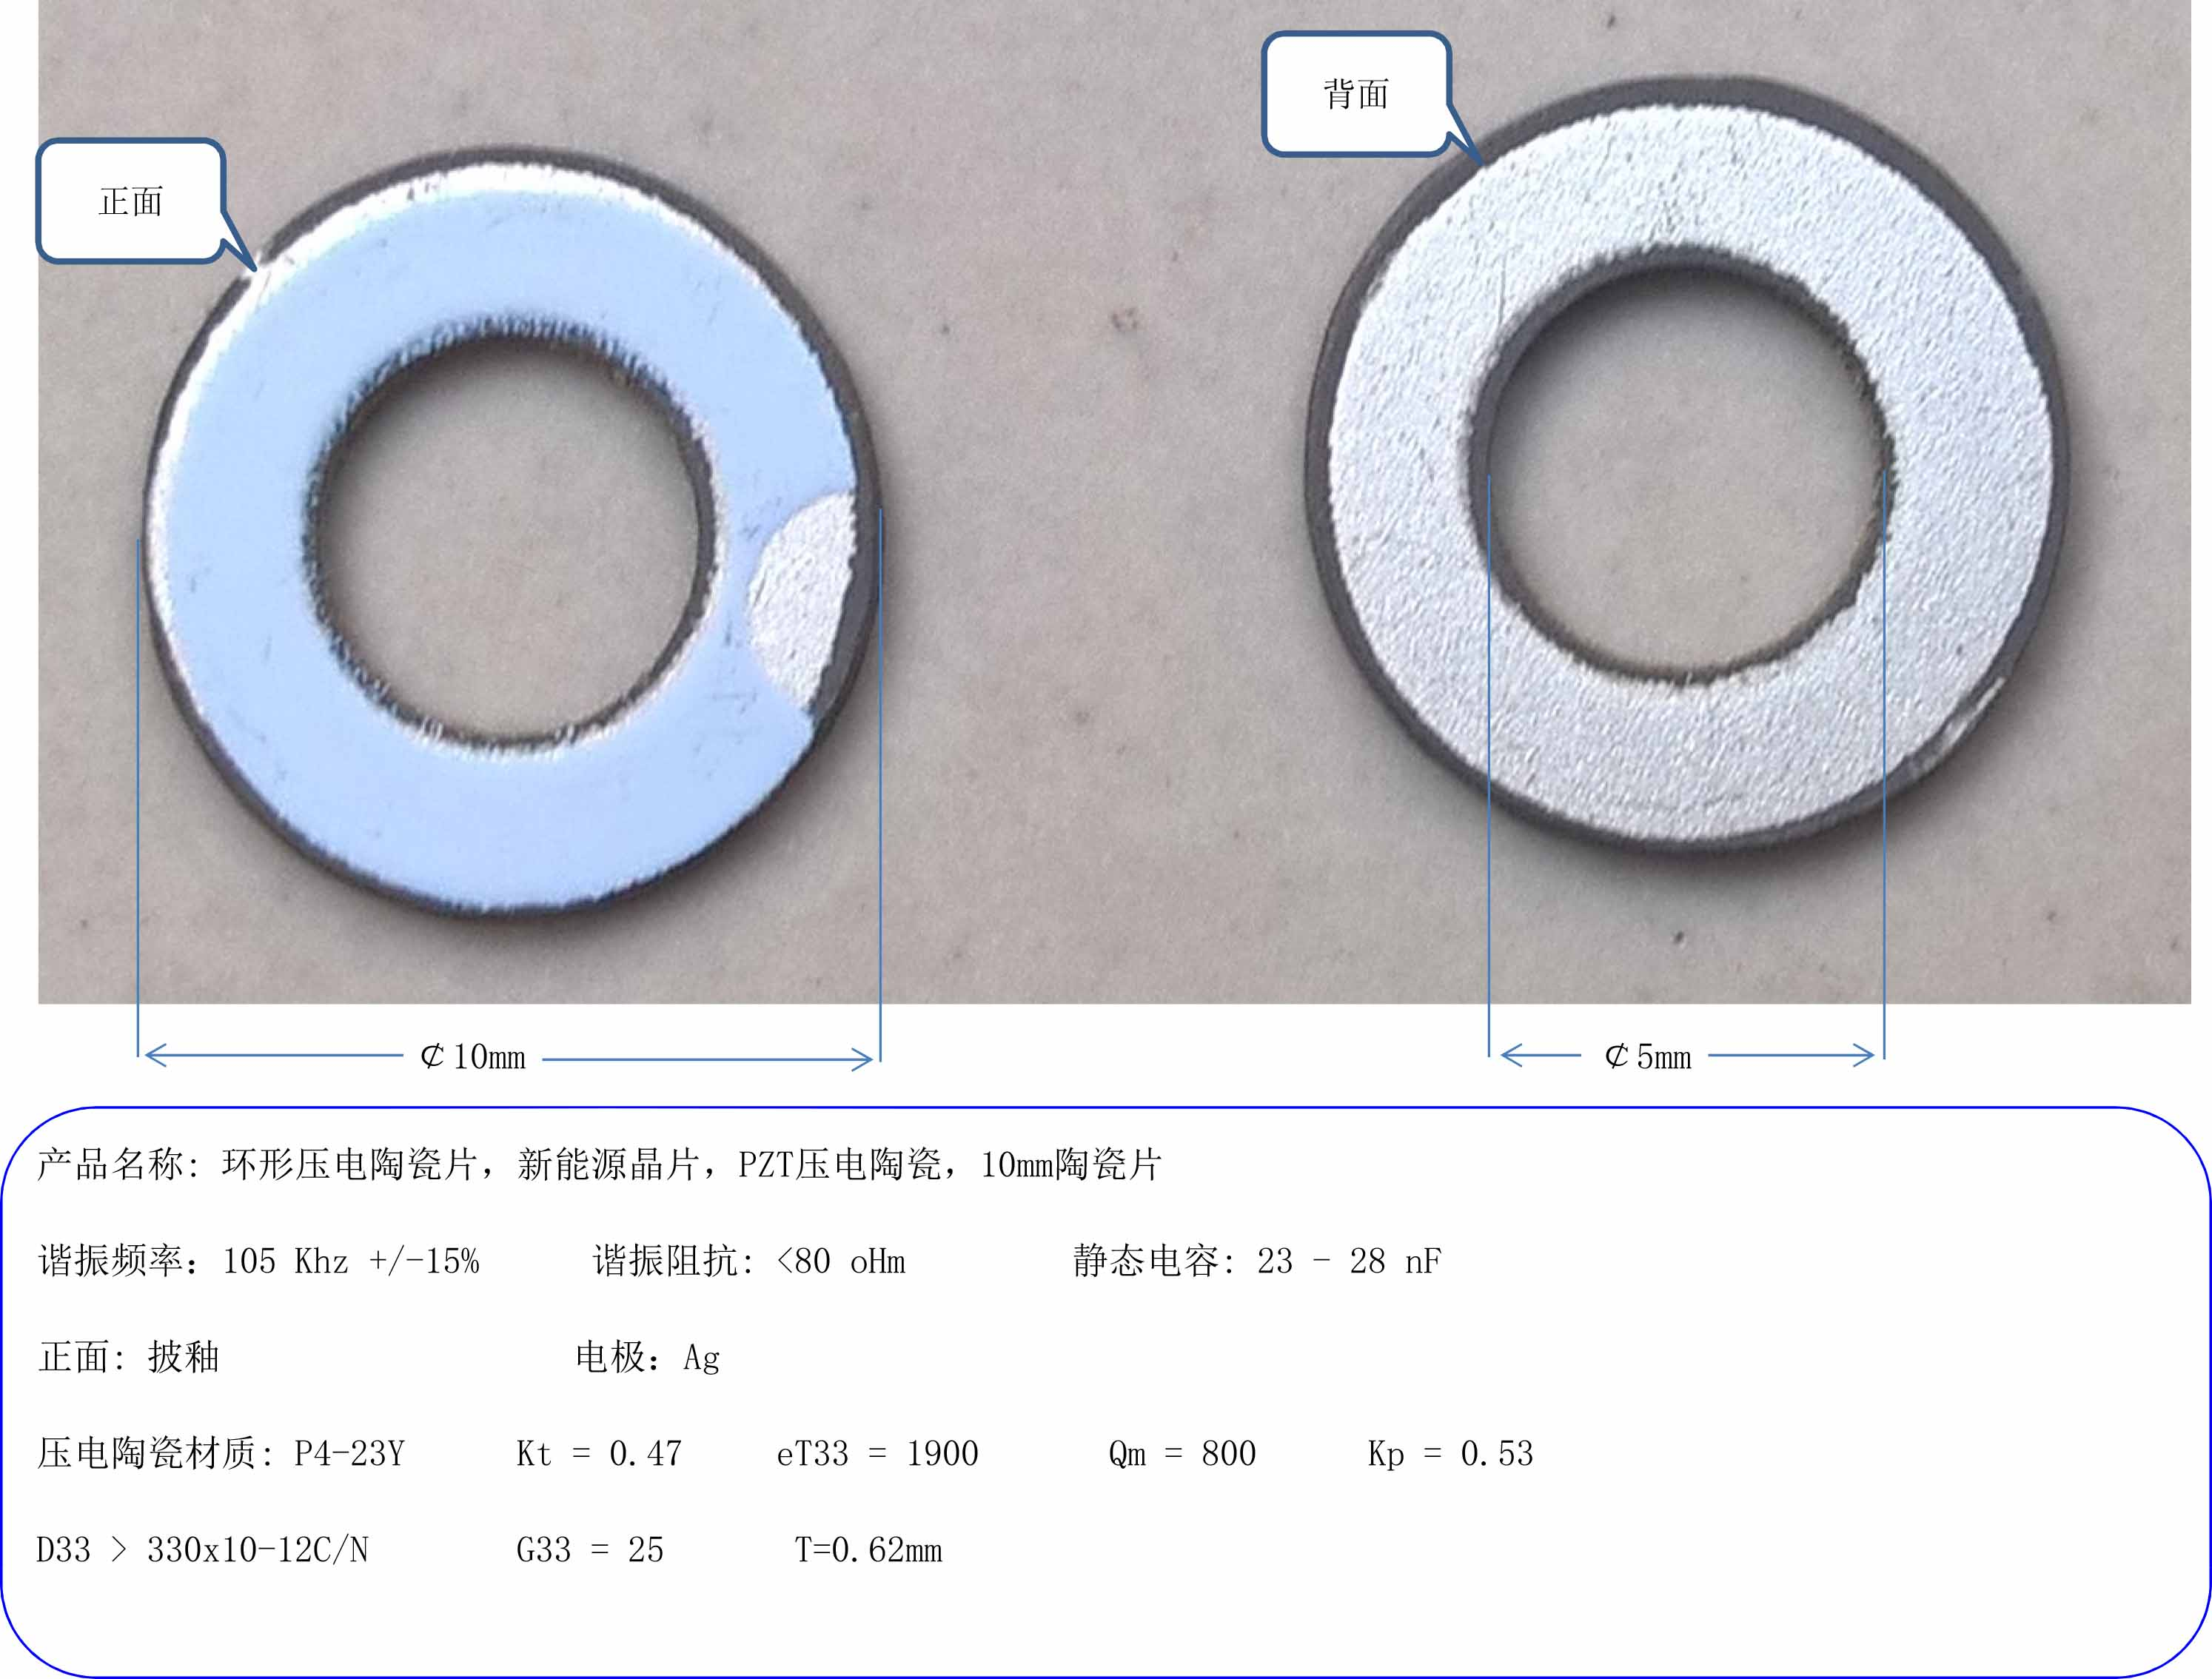 Annular piezoelectric ceramic, new energy chip, PZT piezoelectric ceramic, 10mm ceramic chip ceramic